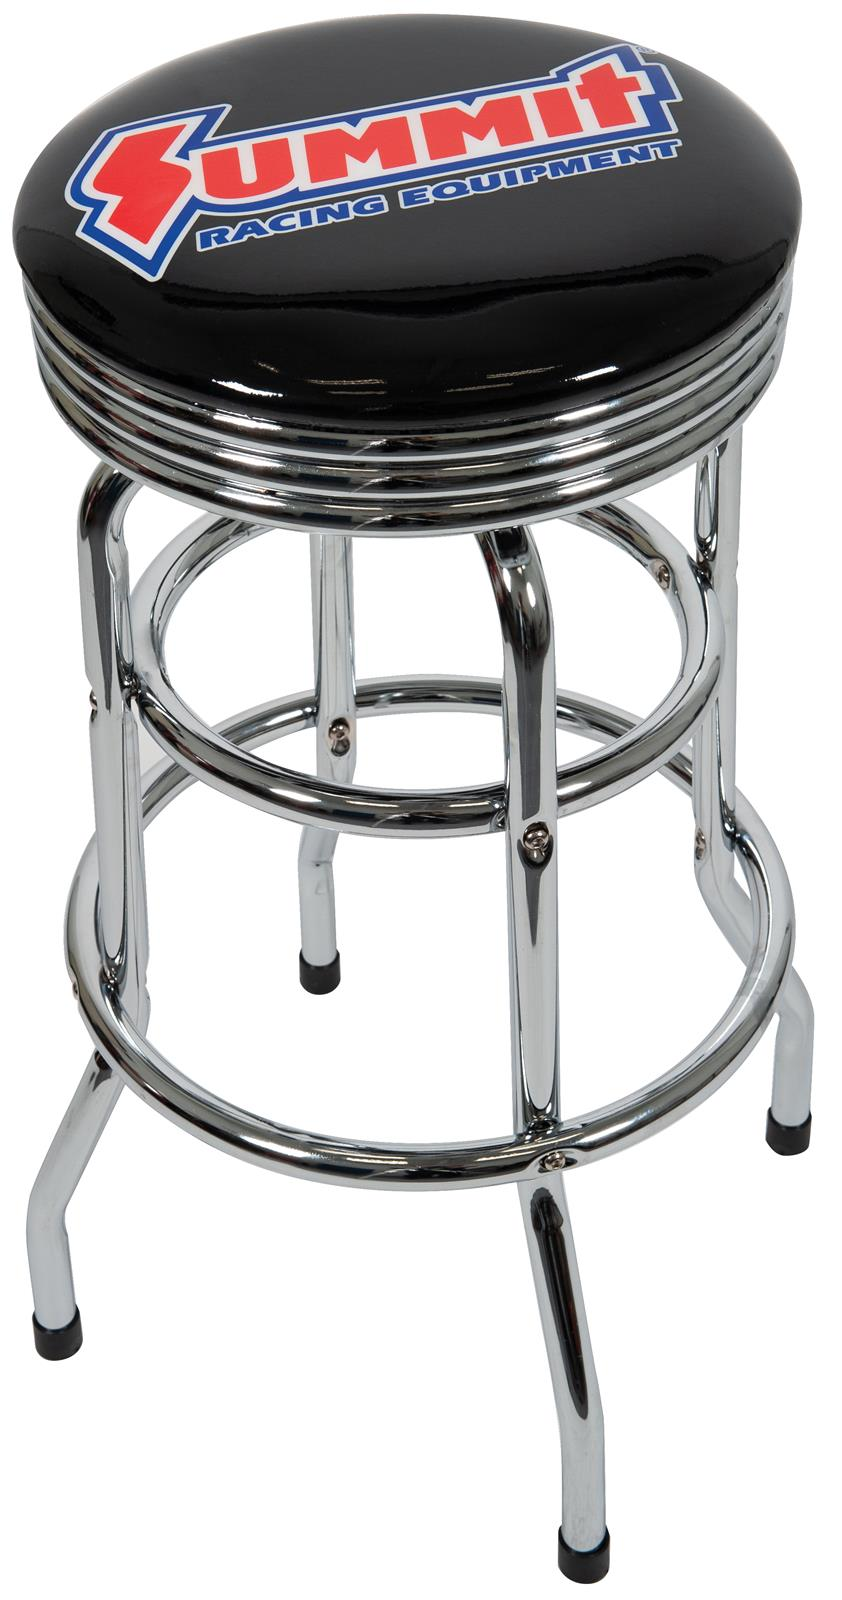 Swell Summit Racing Bar Stools Sum 941093 Pabps2019 Chair Design Images Pabps2019Com